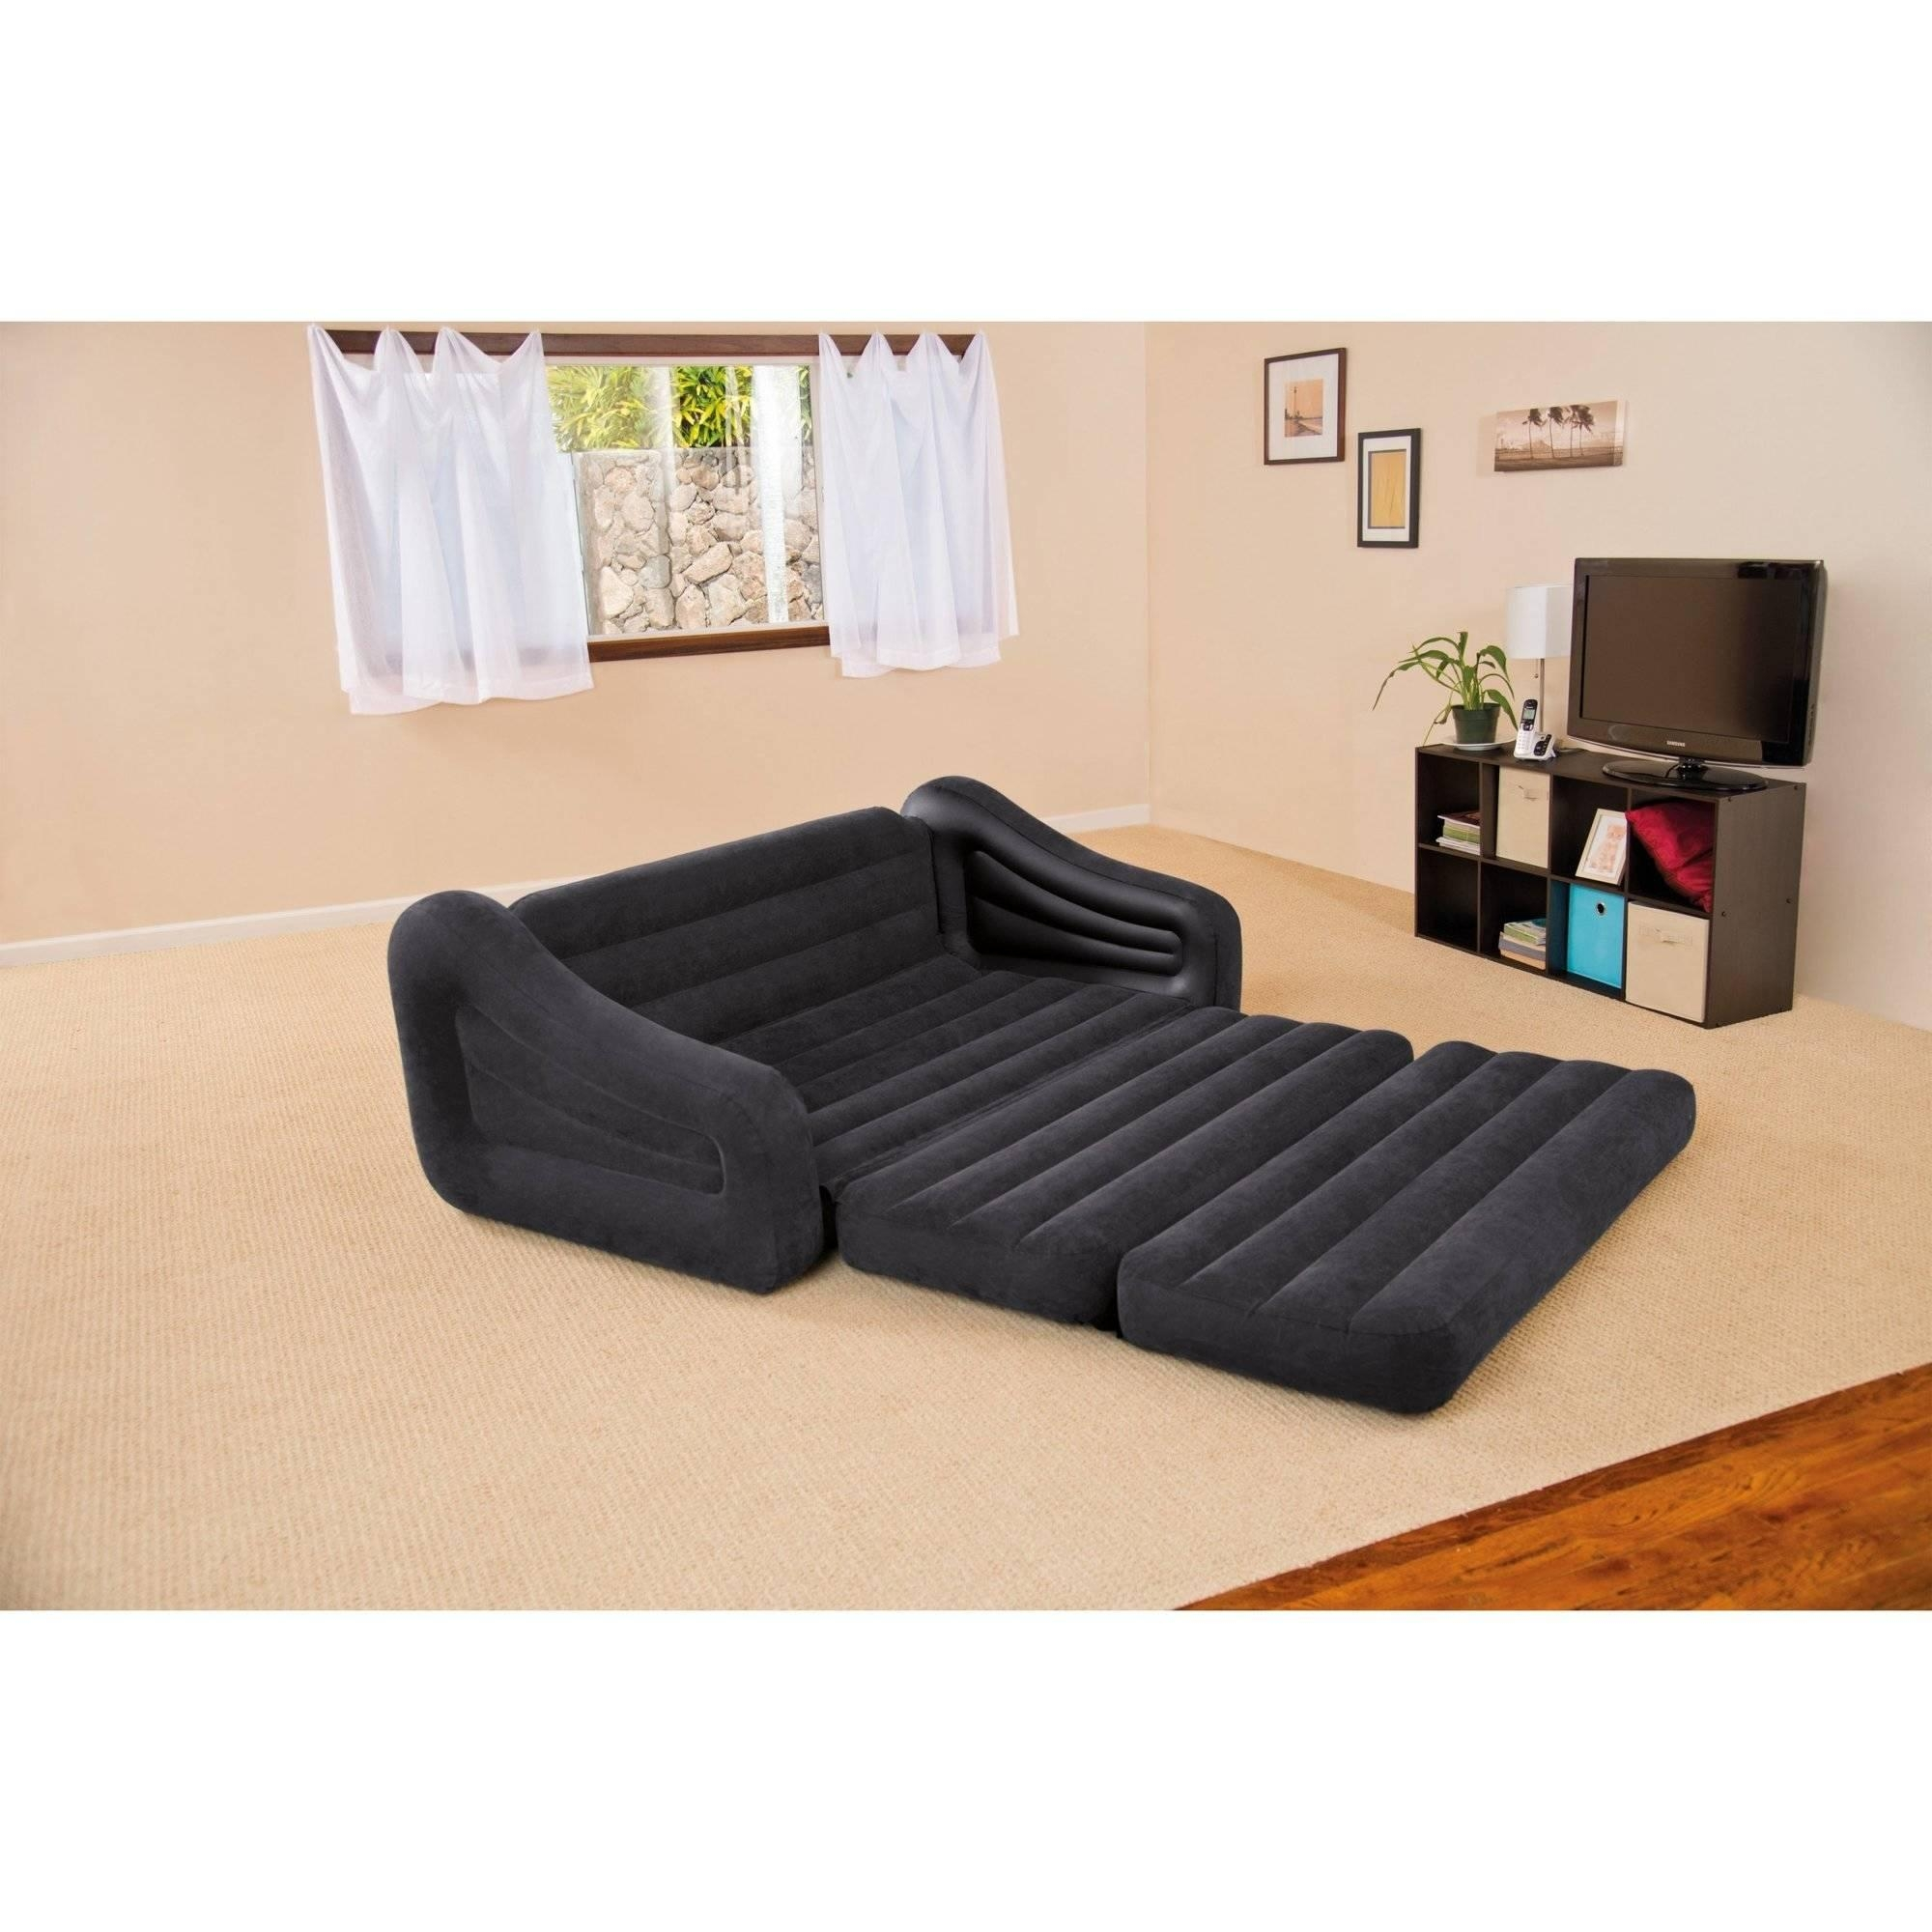 Intex Queen Inflatable Pull Out Sofa Bed – Walmart Regarding Pull Out Queen Size Bed Sofas (Image 13 of 20)